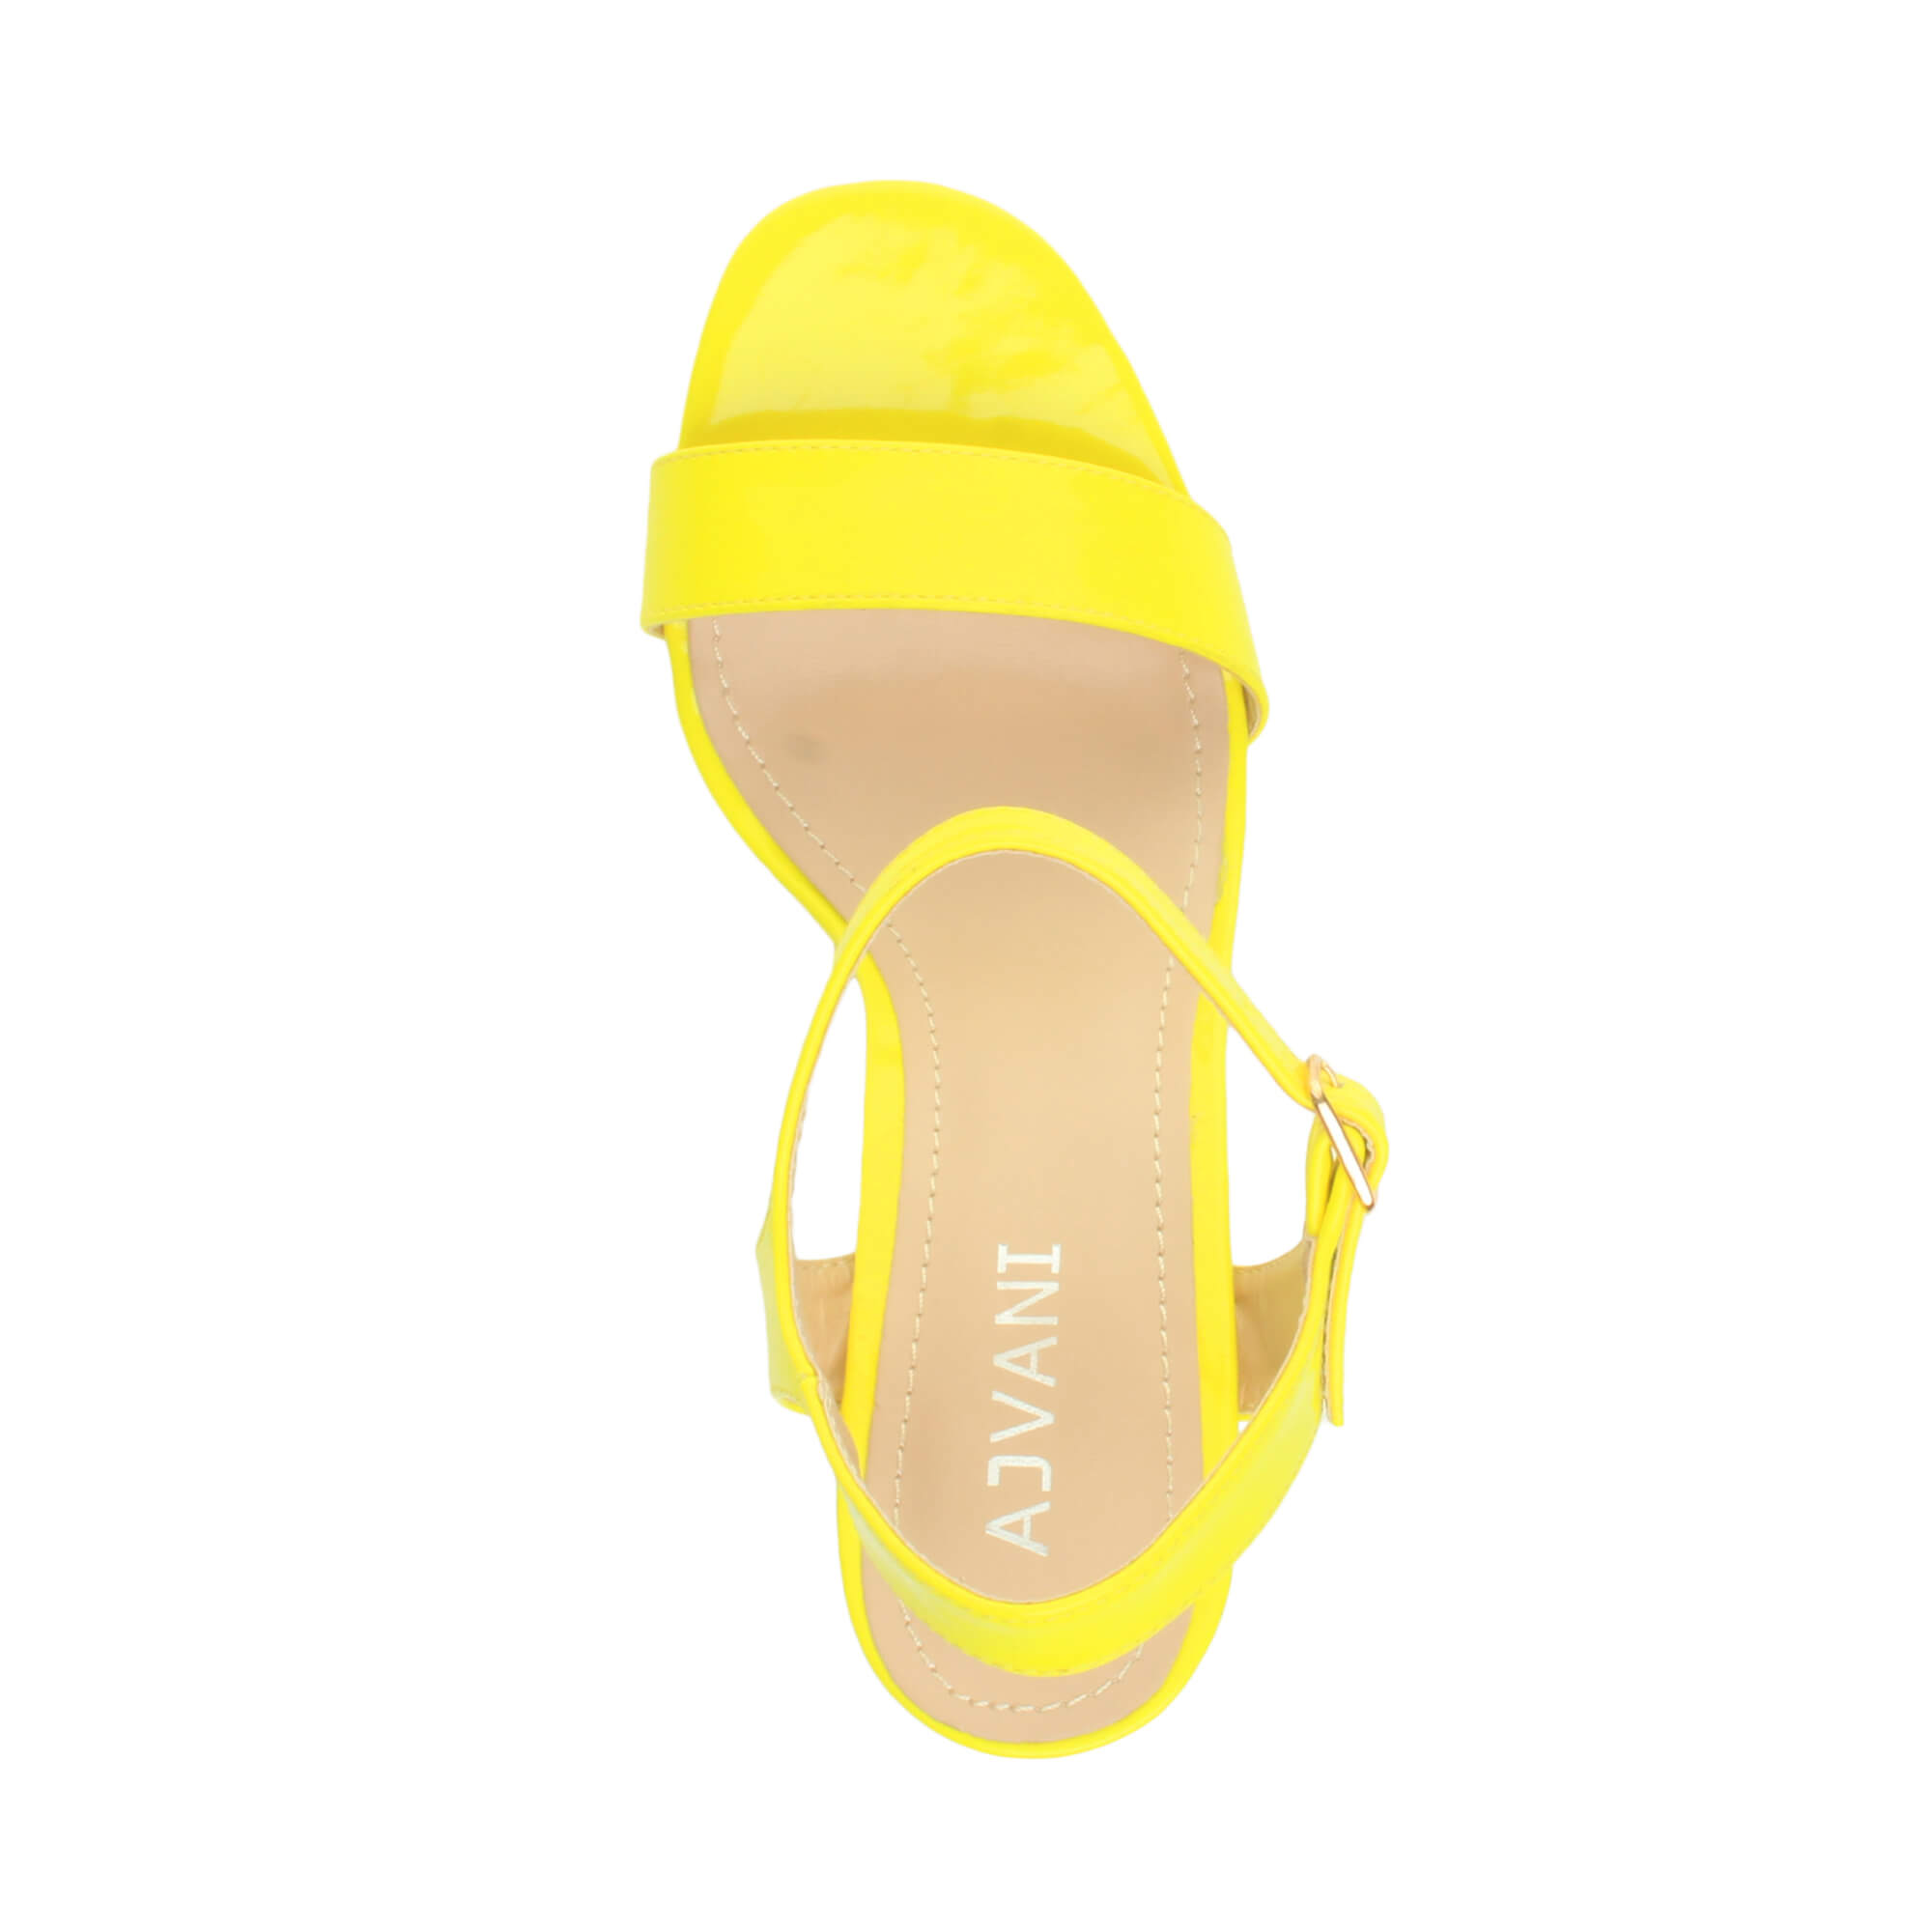 WOMENS-LADIES-HIGH-HEEL-BUCKLE-STRAPPY-BASIC-BARELY-THERE-SANDALS-SHOES-SIZE thumbnail 91